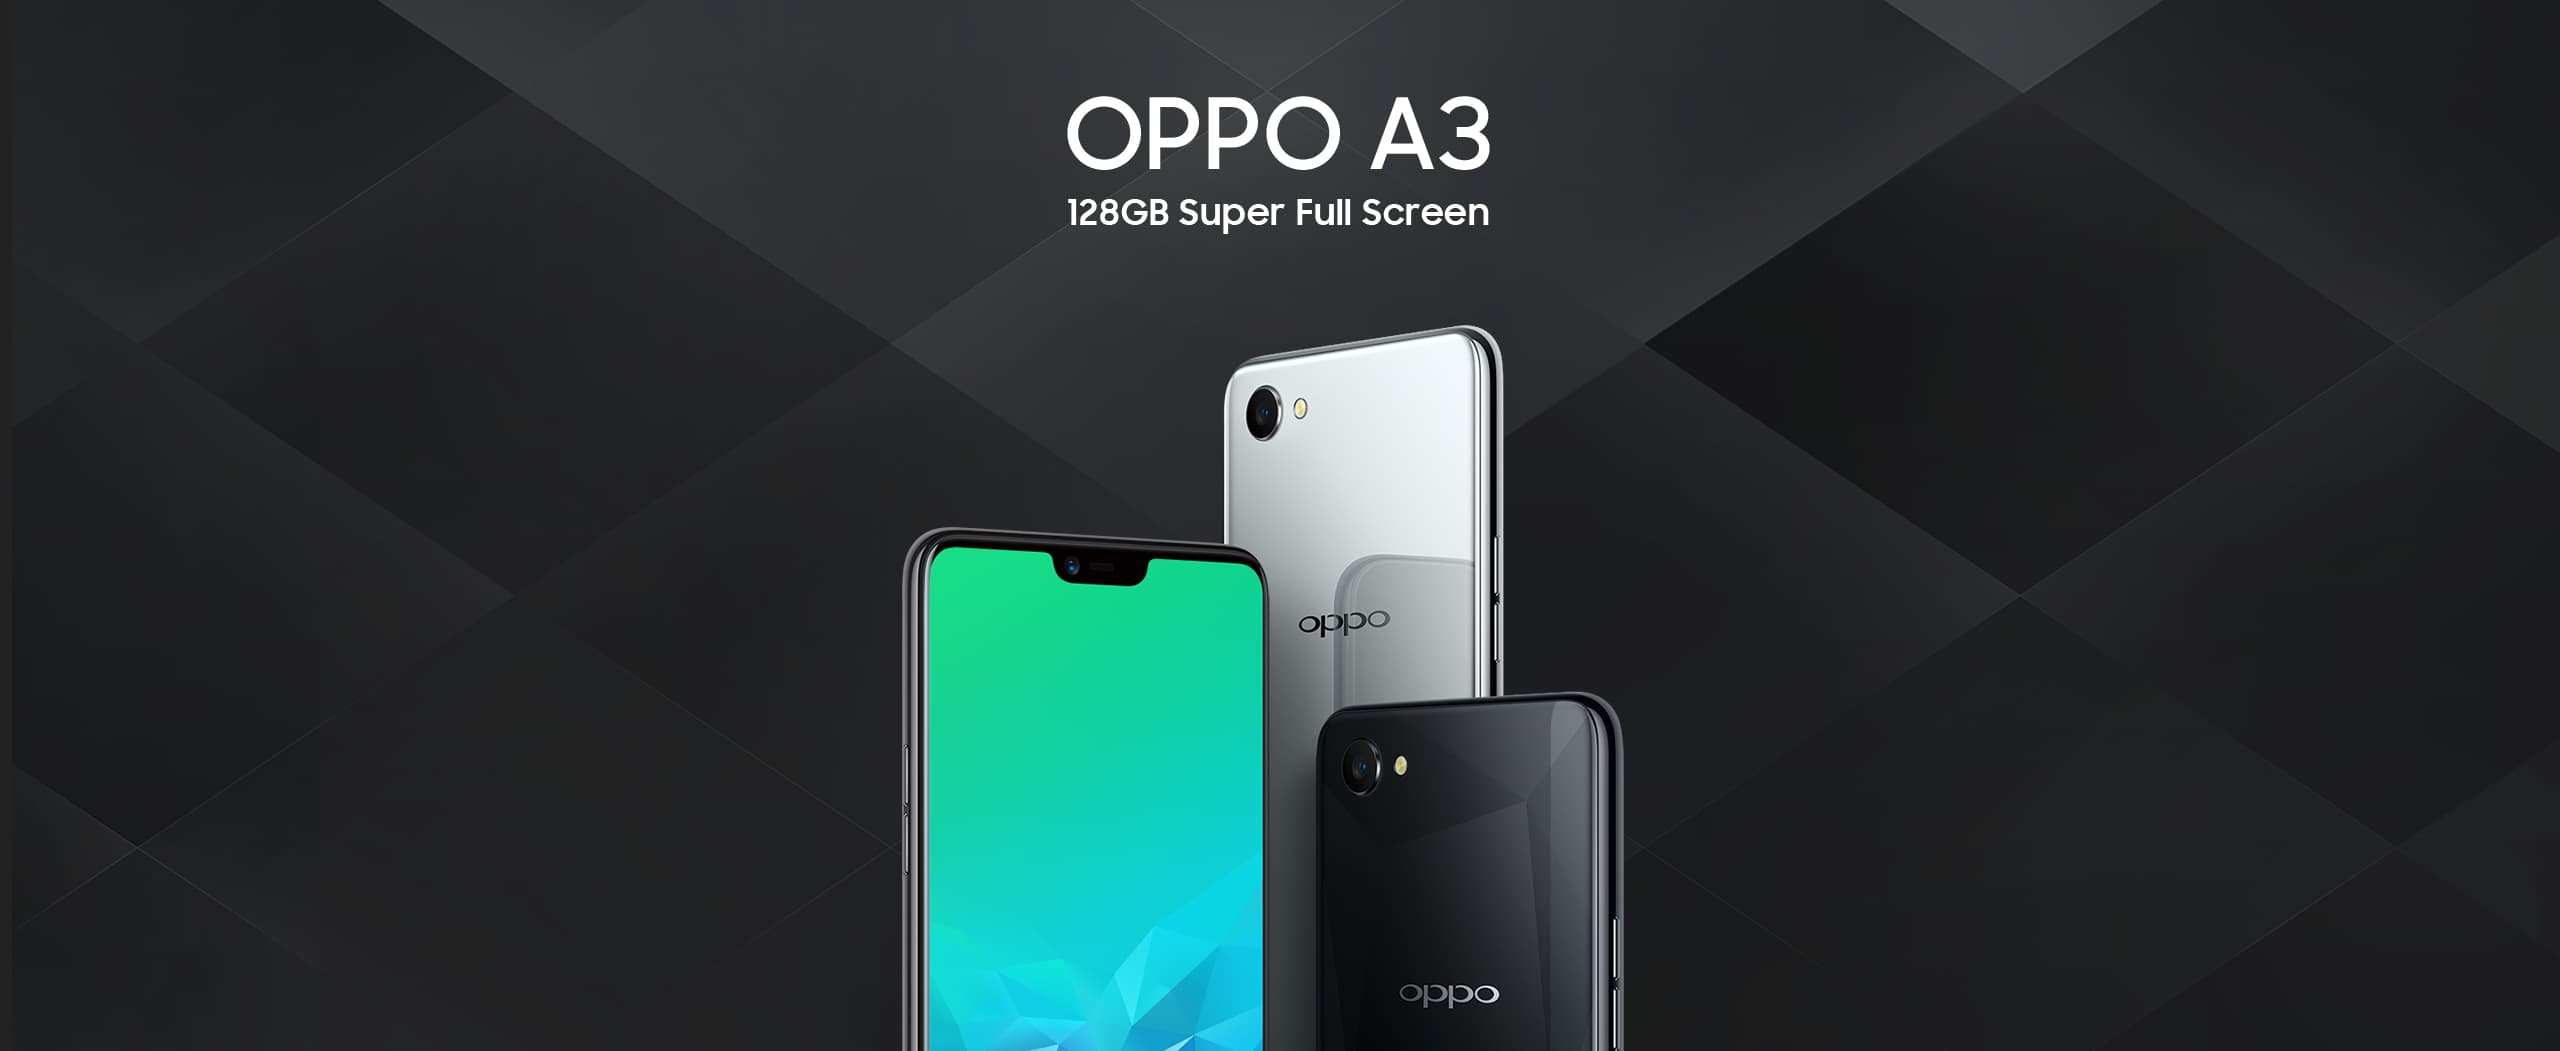 OPPO A3 - 128GB Super Full Screen - OPPO Global